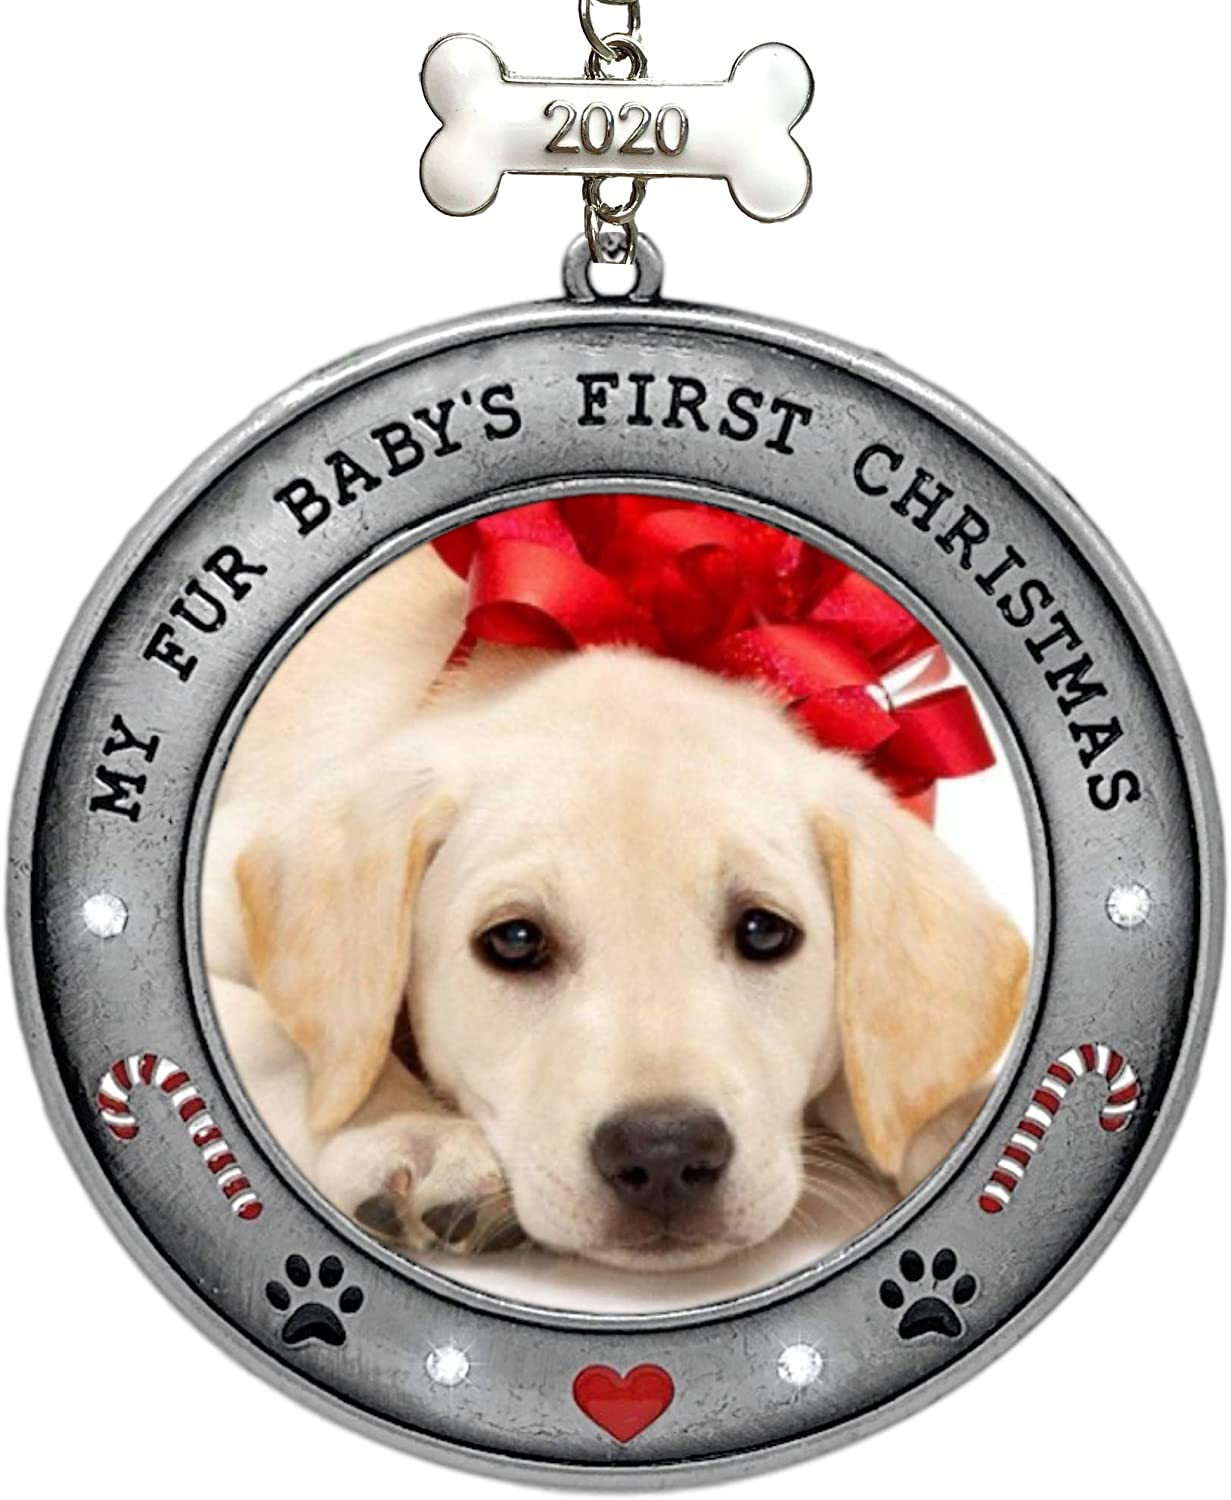 BANBERRY DESIGNS Puppy's First Christmas - 2020 Dated Picture Ornament for Your Fur Baby - Paw Prints, Hearts, Dog Bone and Candy Cane Design - New Puppy 1st Annual Christmas Holiday Hanging Ornament…